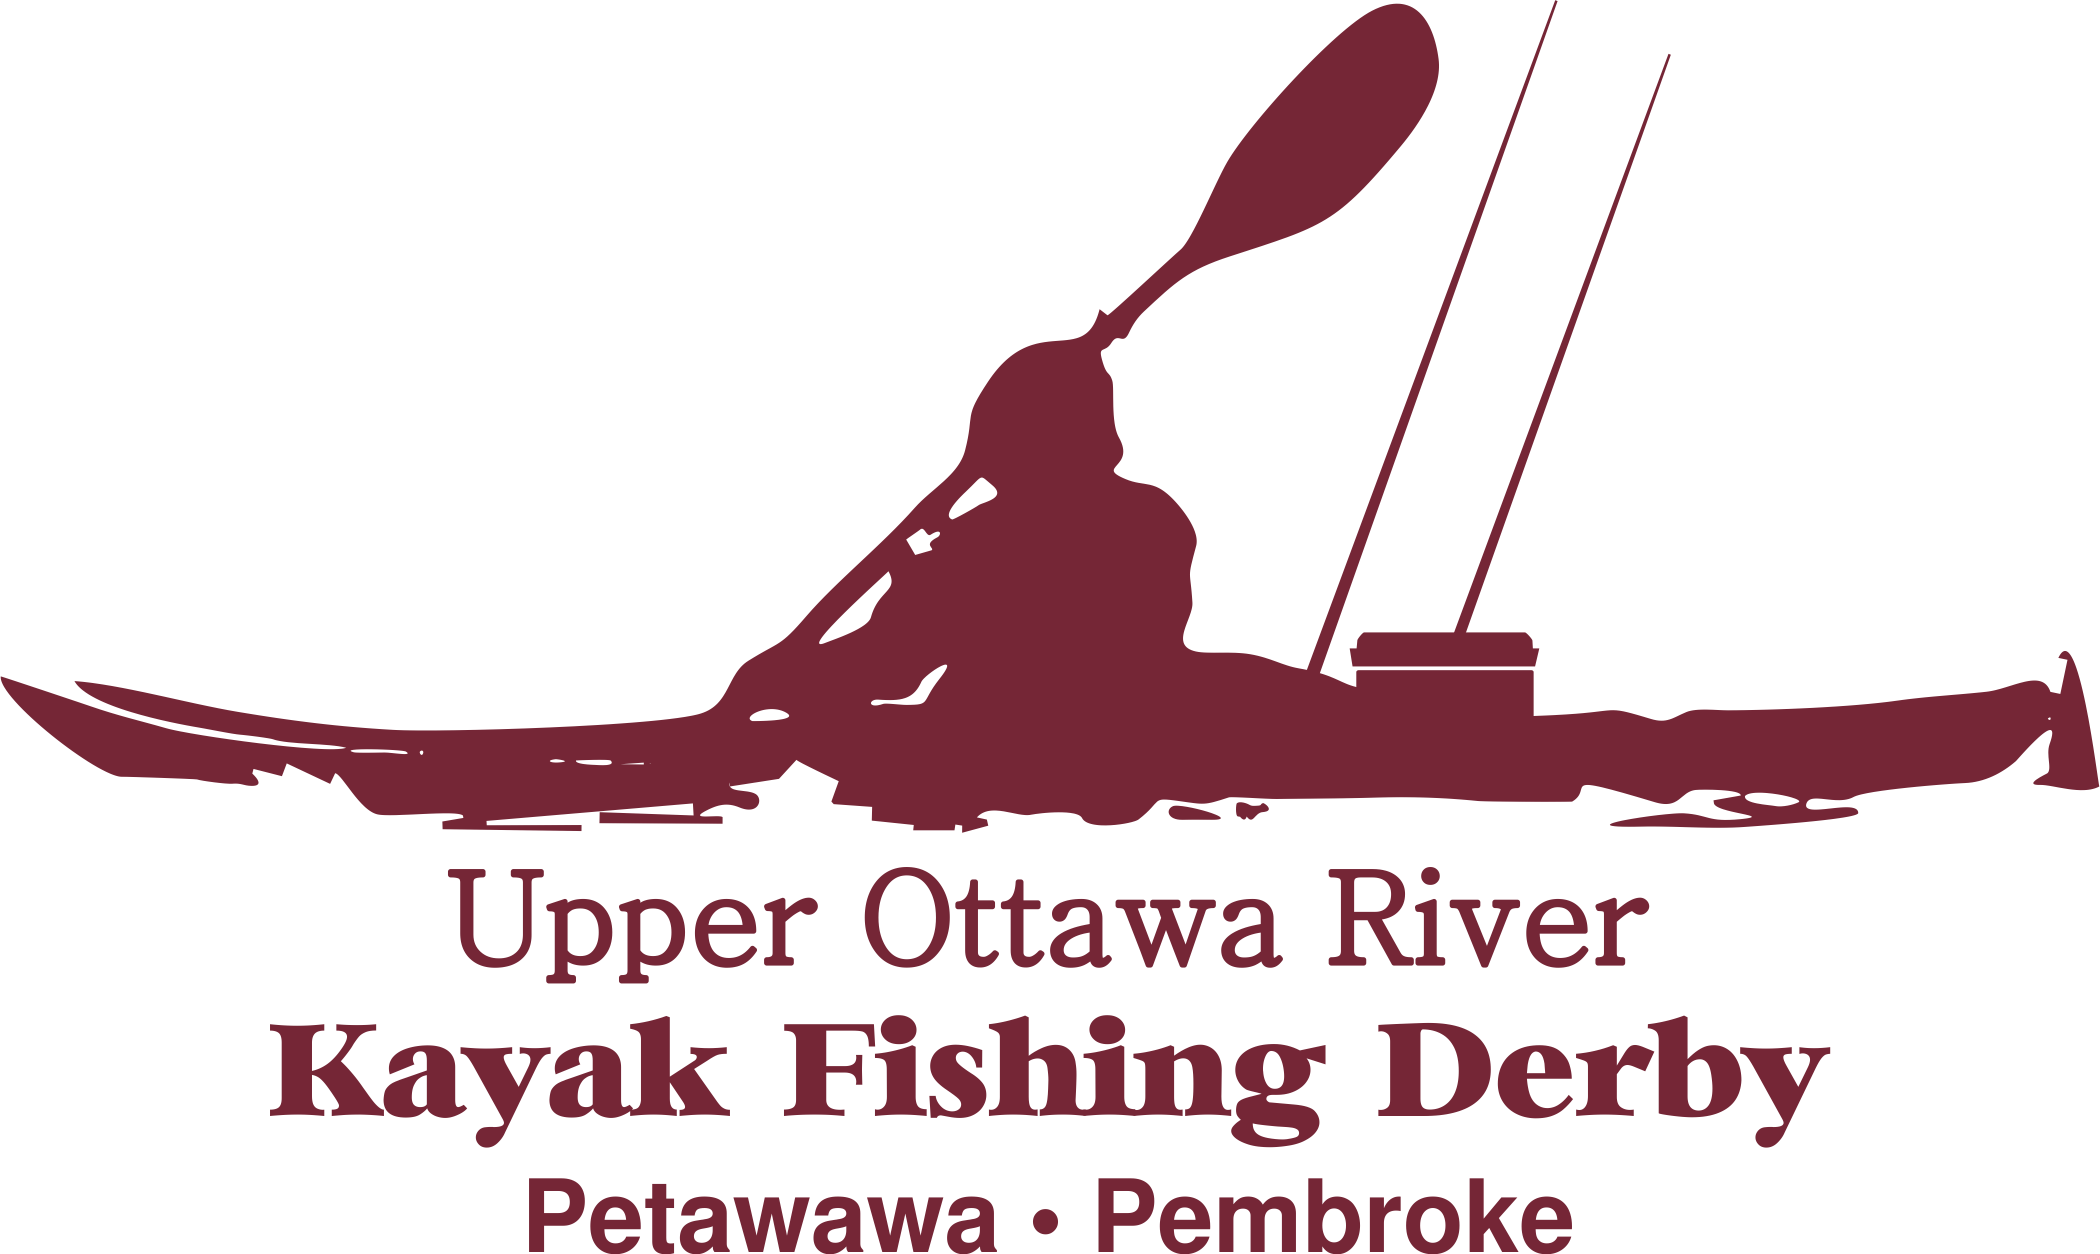 Image of a fishing kayaker